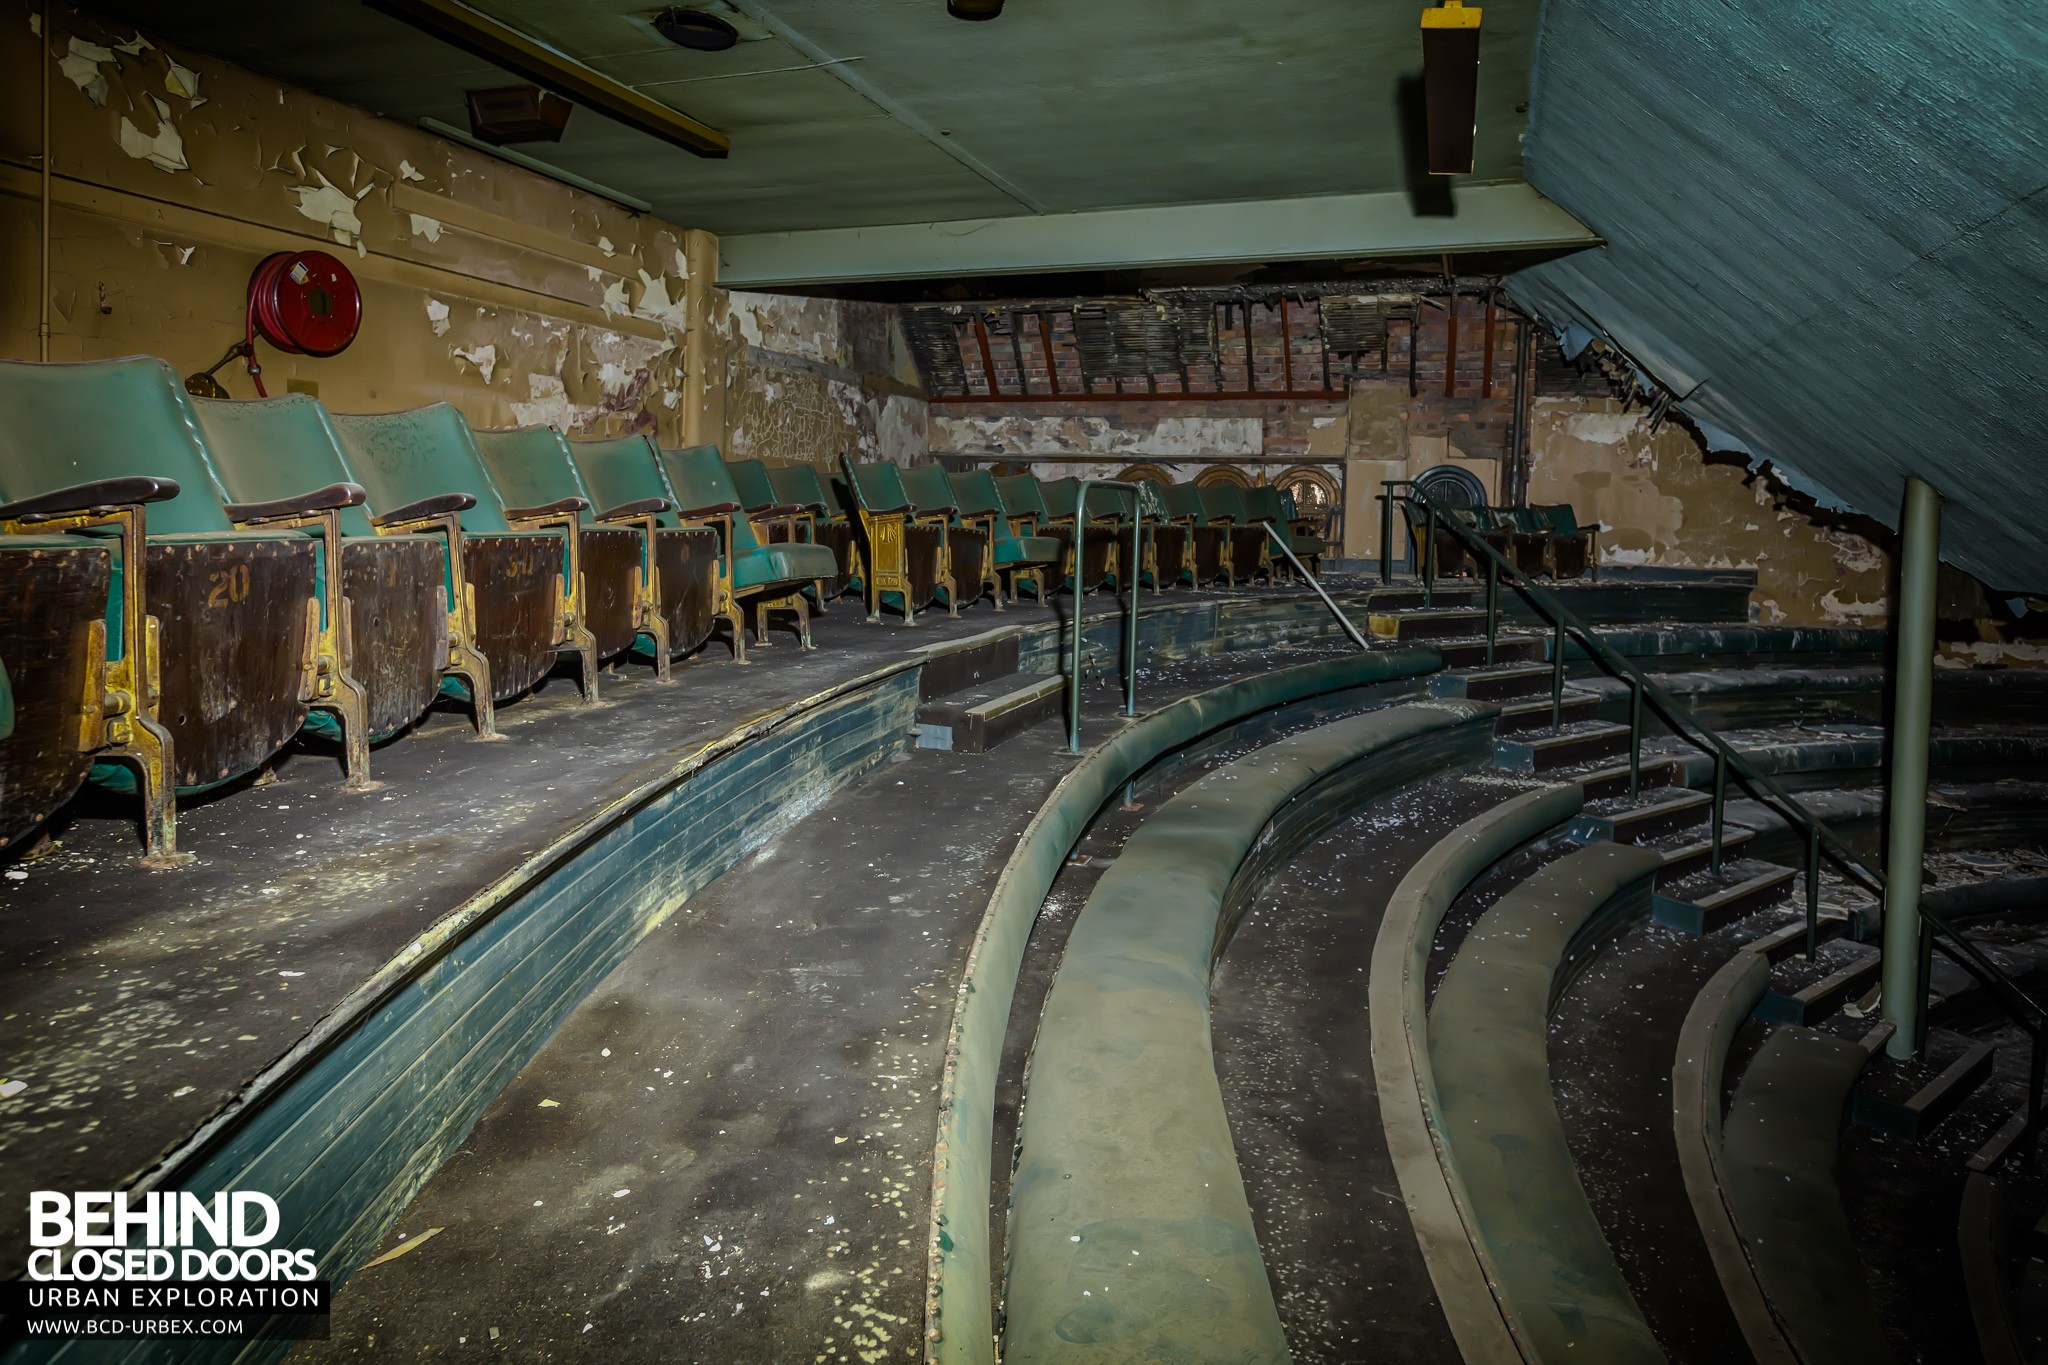 Wondrous Grand Theatre Doncaster Urbex Behind Closed Doors Urban Gmtry Best Dining Table And Chair Ideas Images Gmtryco